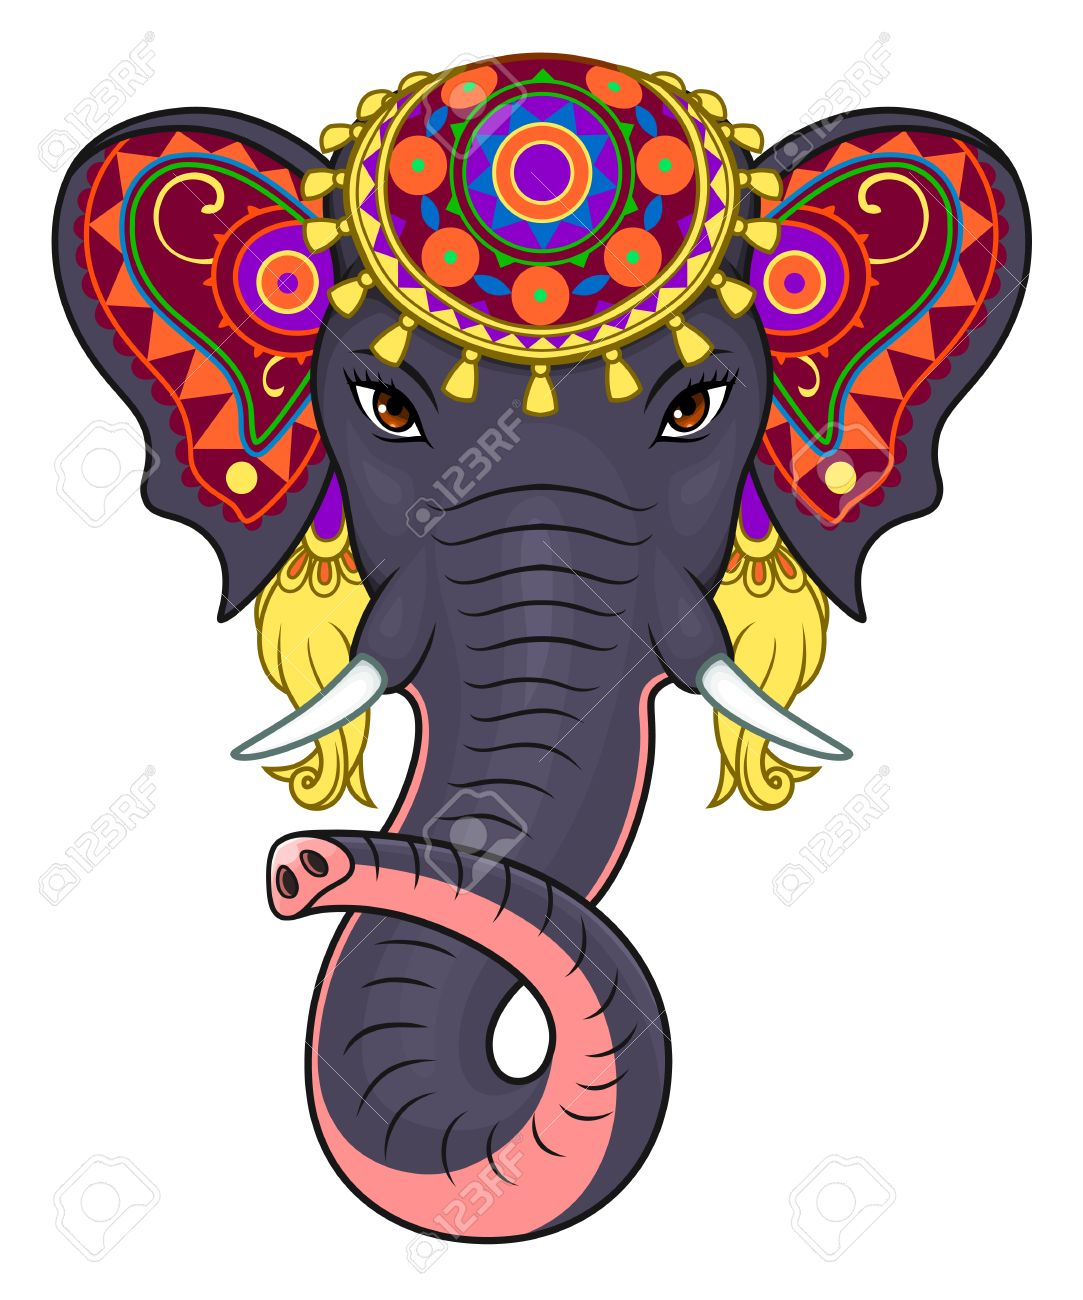 Indian Elephant Clipart : indian, elephant, clipart, Indian, Elephant, Royalty, Cliparts,, Vectors,, Stock, Illustration., Image, 57639690.